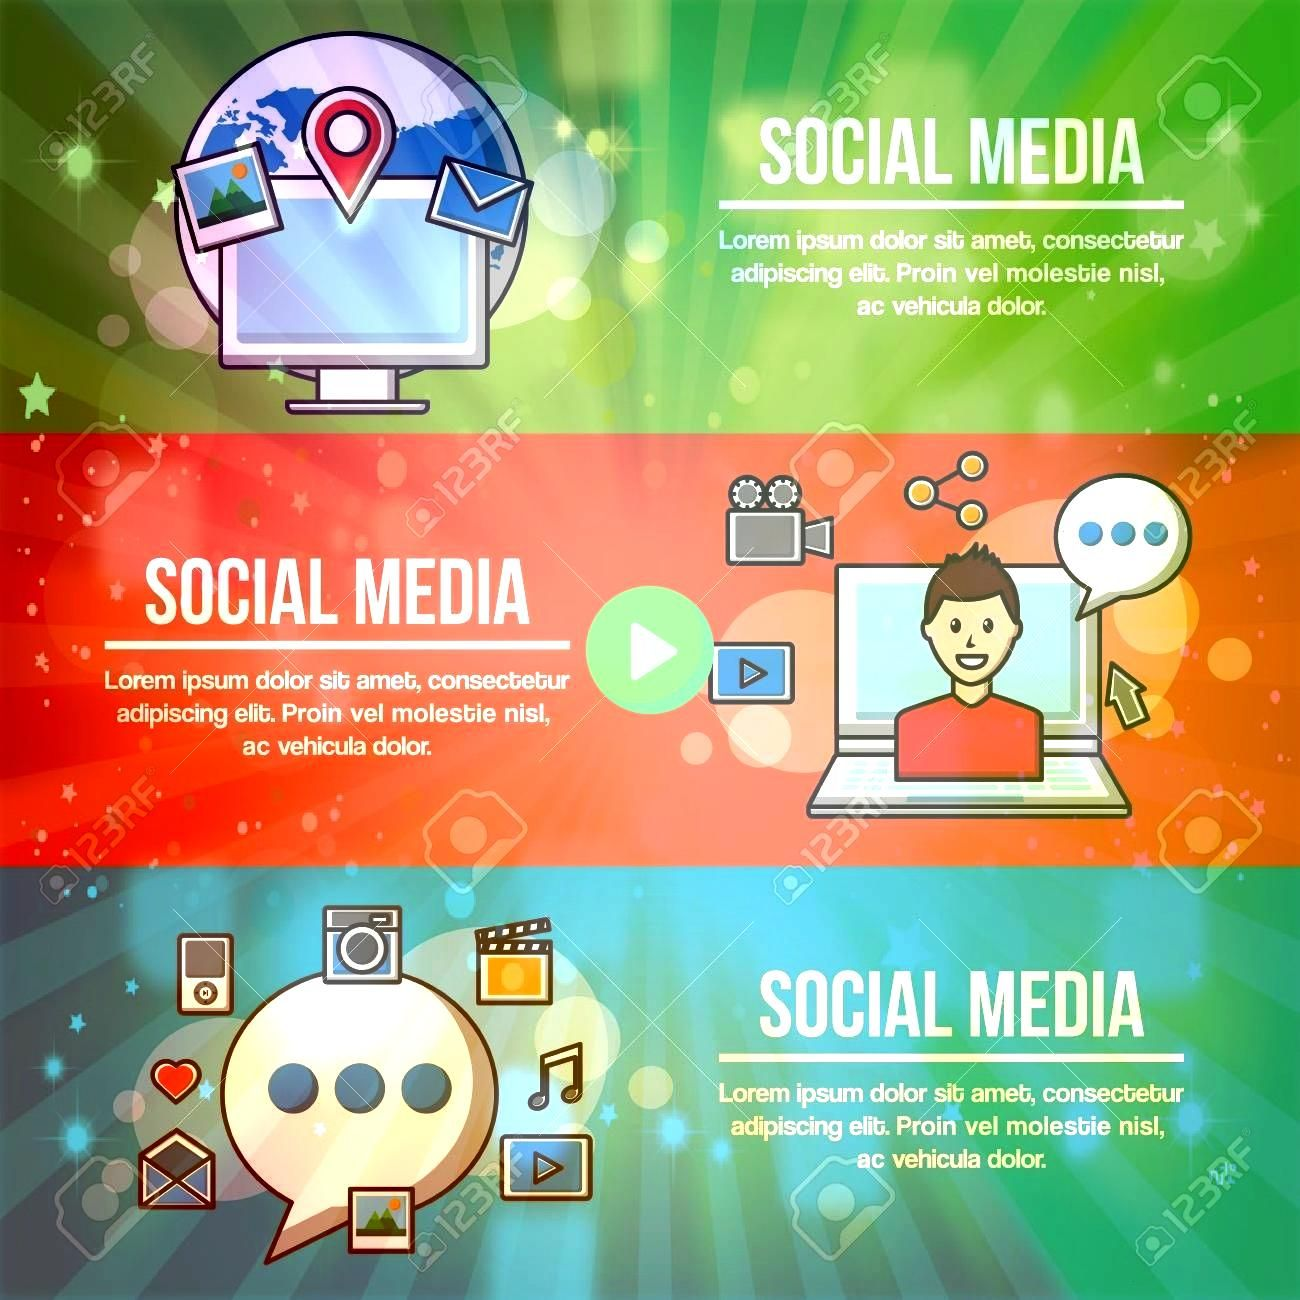 social media networks banners with signs explain information profile location photos vector illustration Illustration People social media networks banners with signs expl...